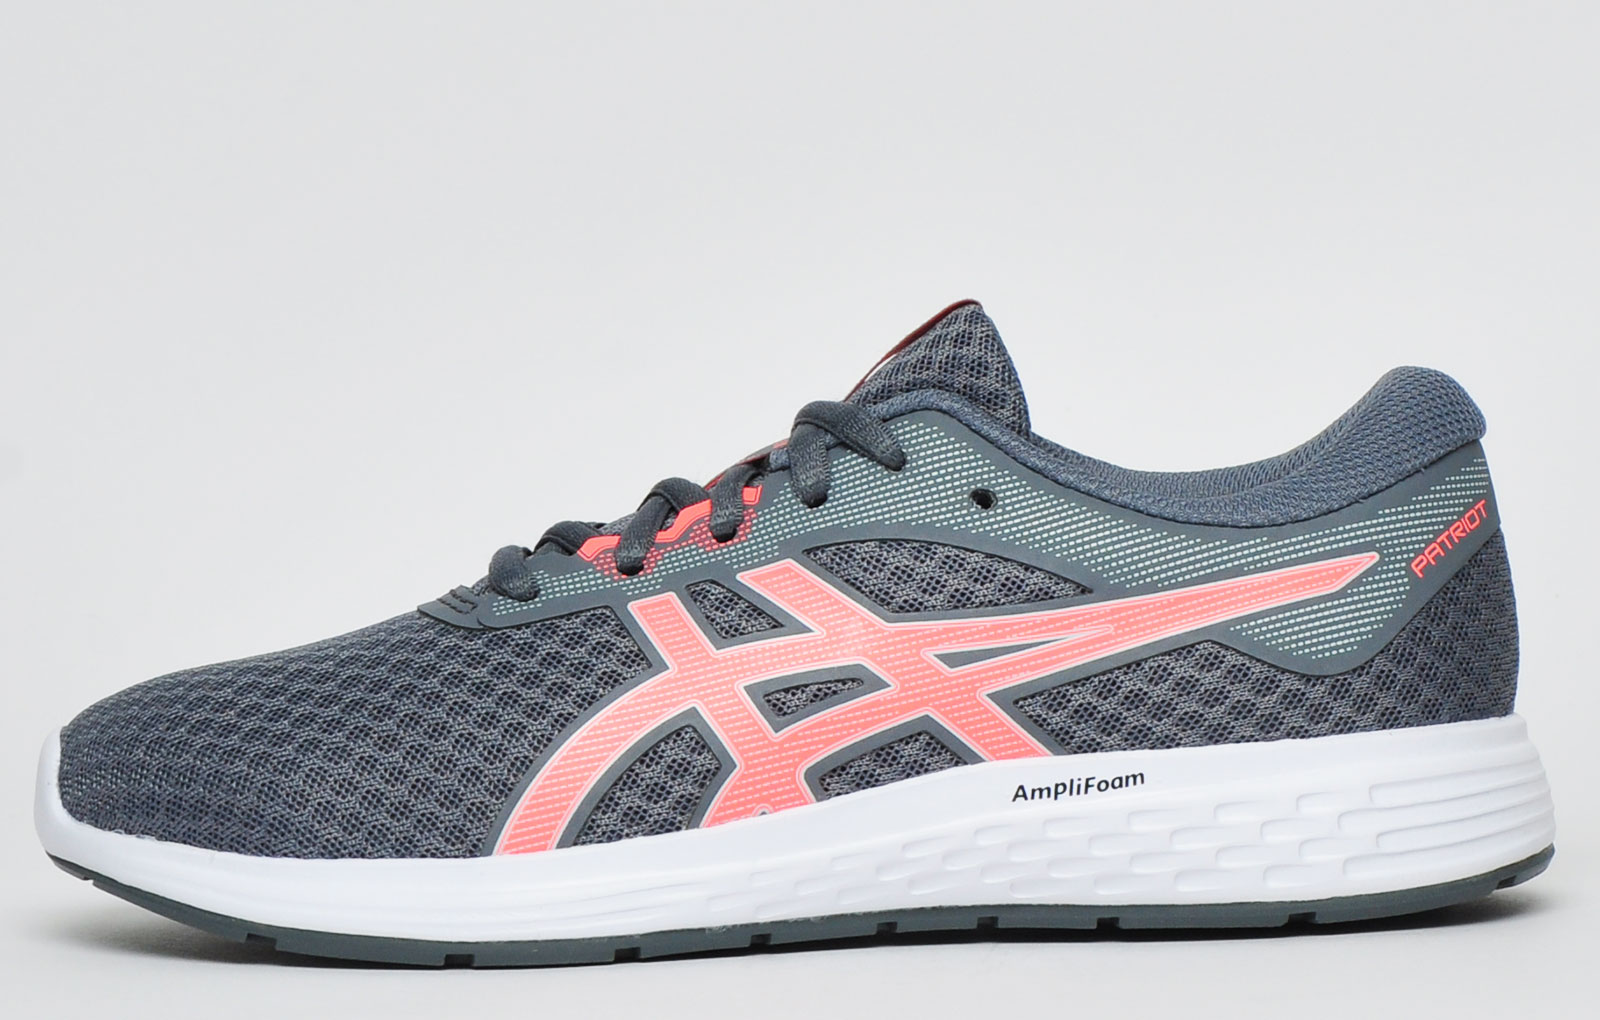 fcf2b8b3b9 Cheap ASICS Trainers & Shoes for Women   Express Trainers